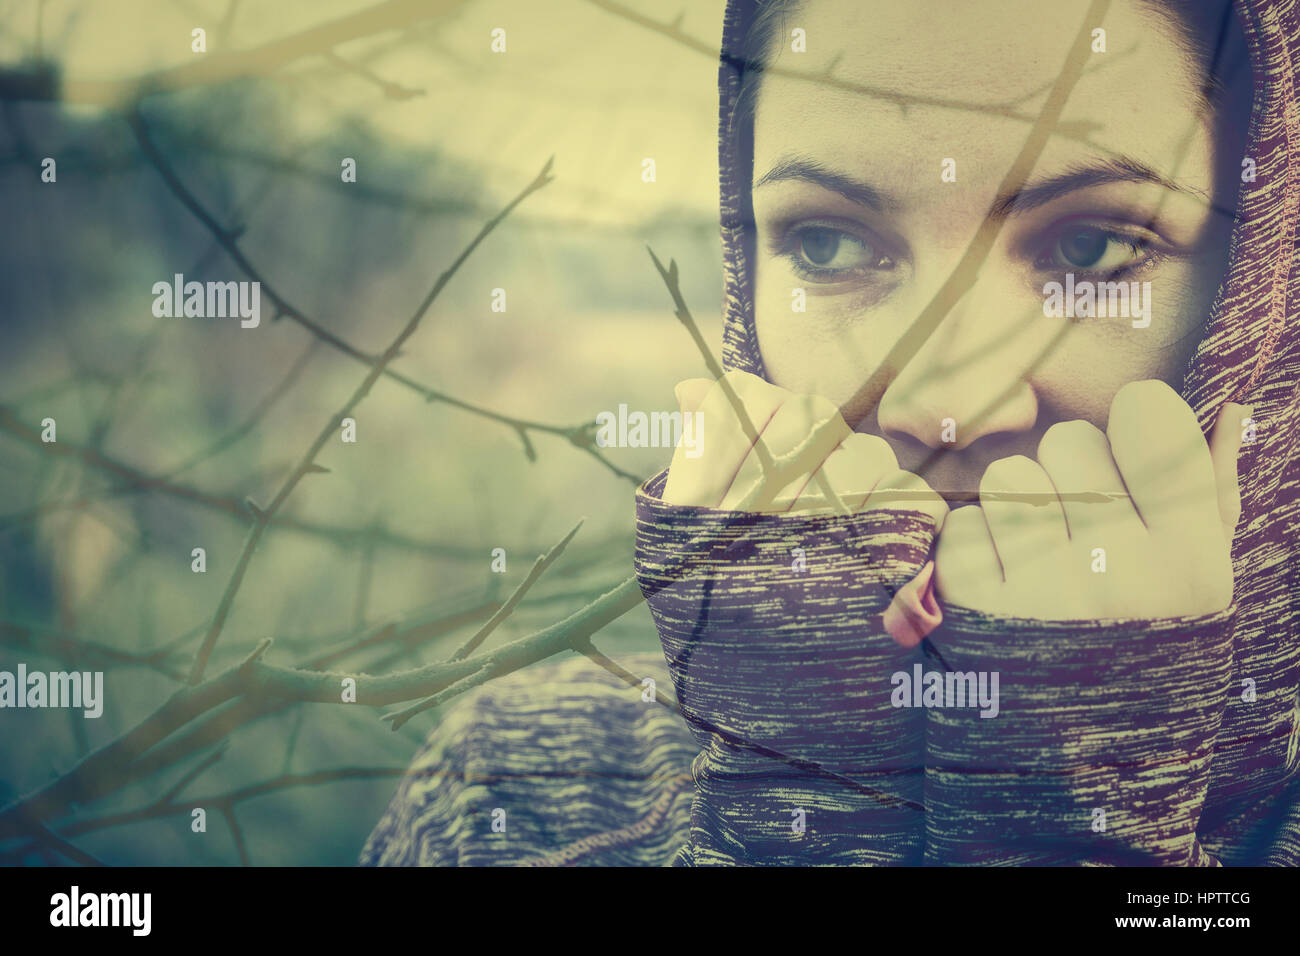 Sad woman concept - Stock Image